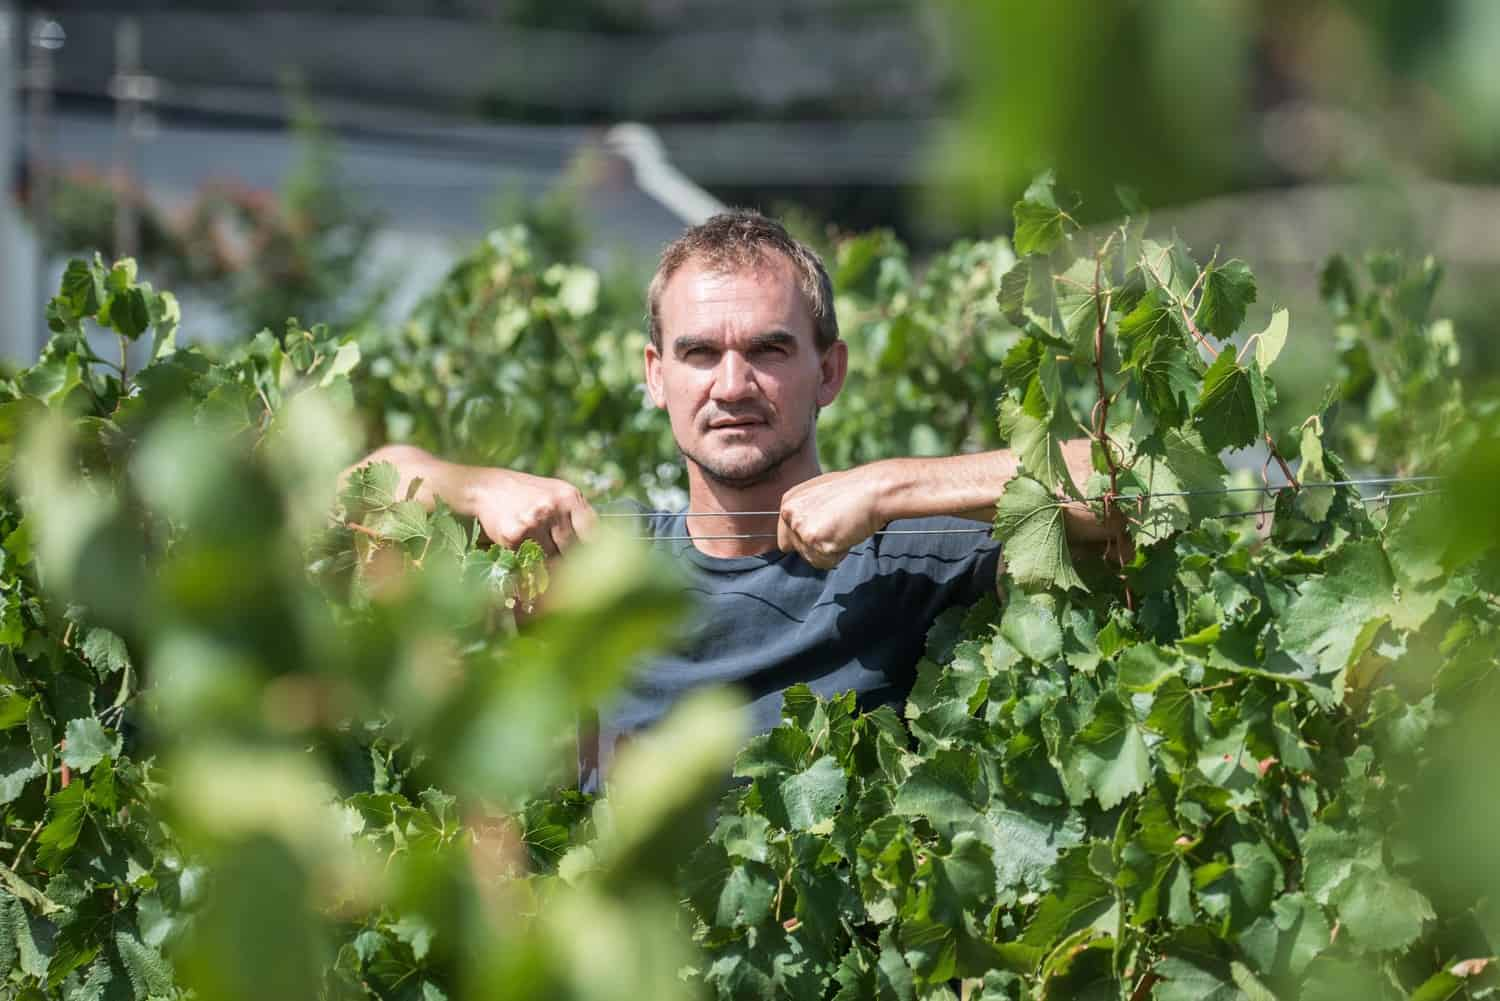 Fourth-generation farmer and winemaker, Philip Jonker is on a mission to change to not only his community, but Africa. Photo: Supplied/Food For Mzansi